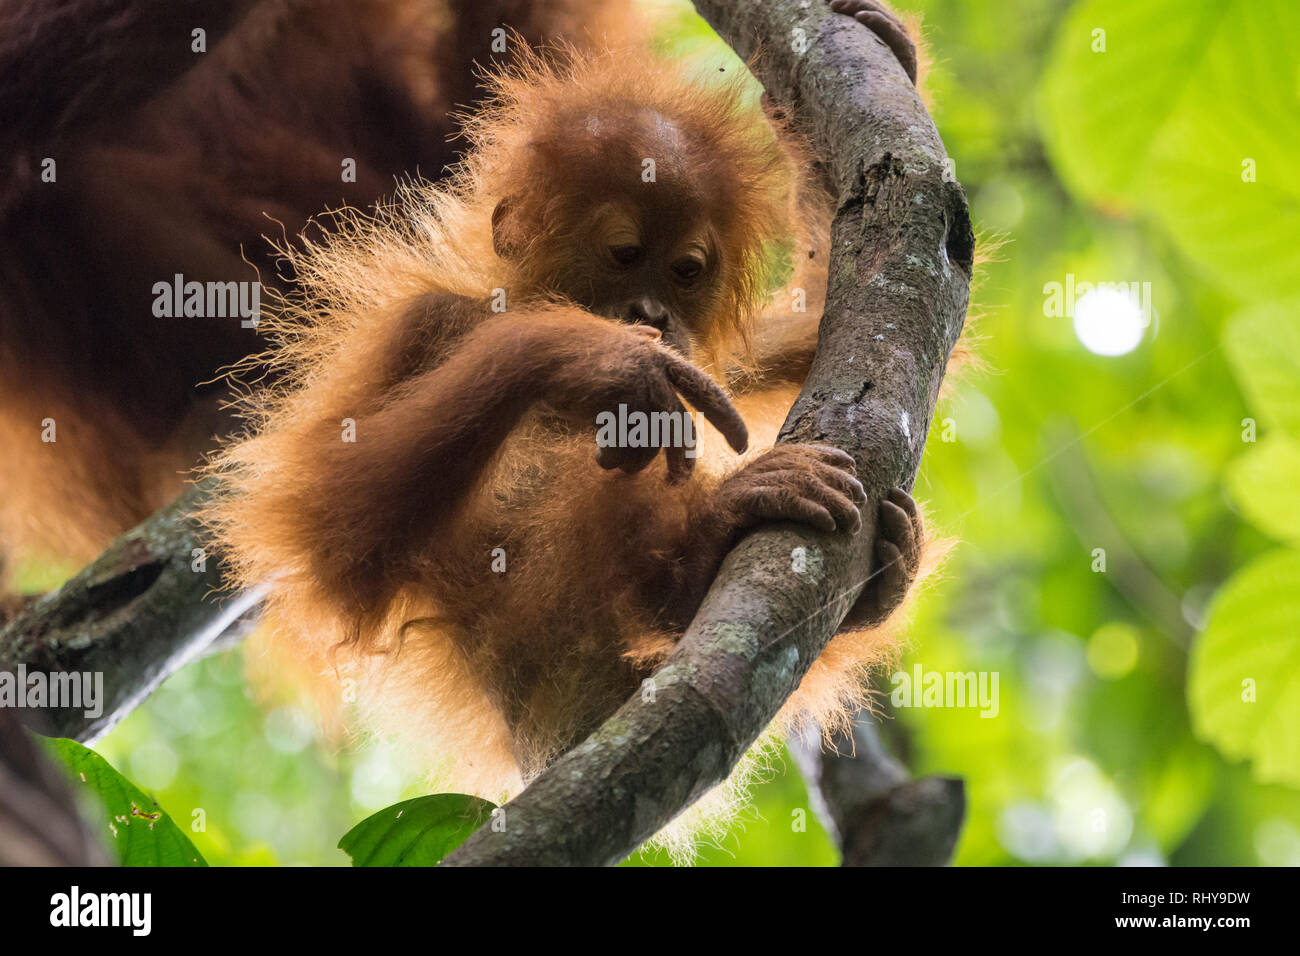 a cute baby orangutan in the Forests of Bukit Lawang on Sumatra Stock Photo